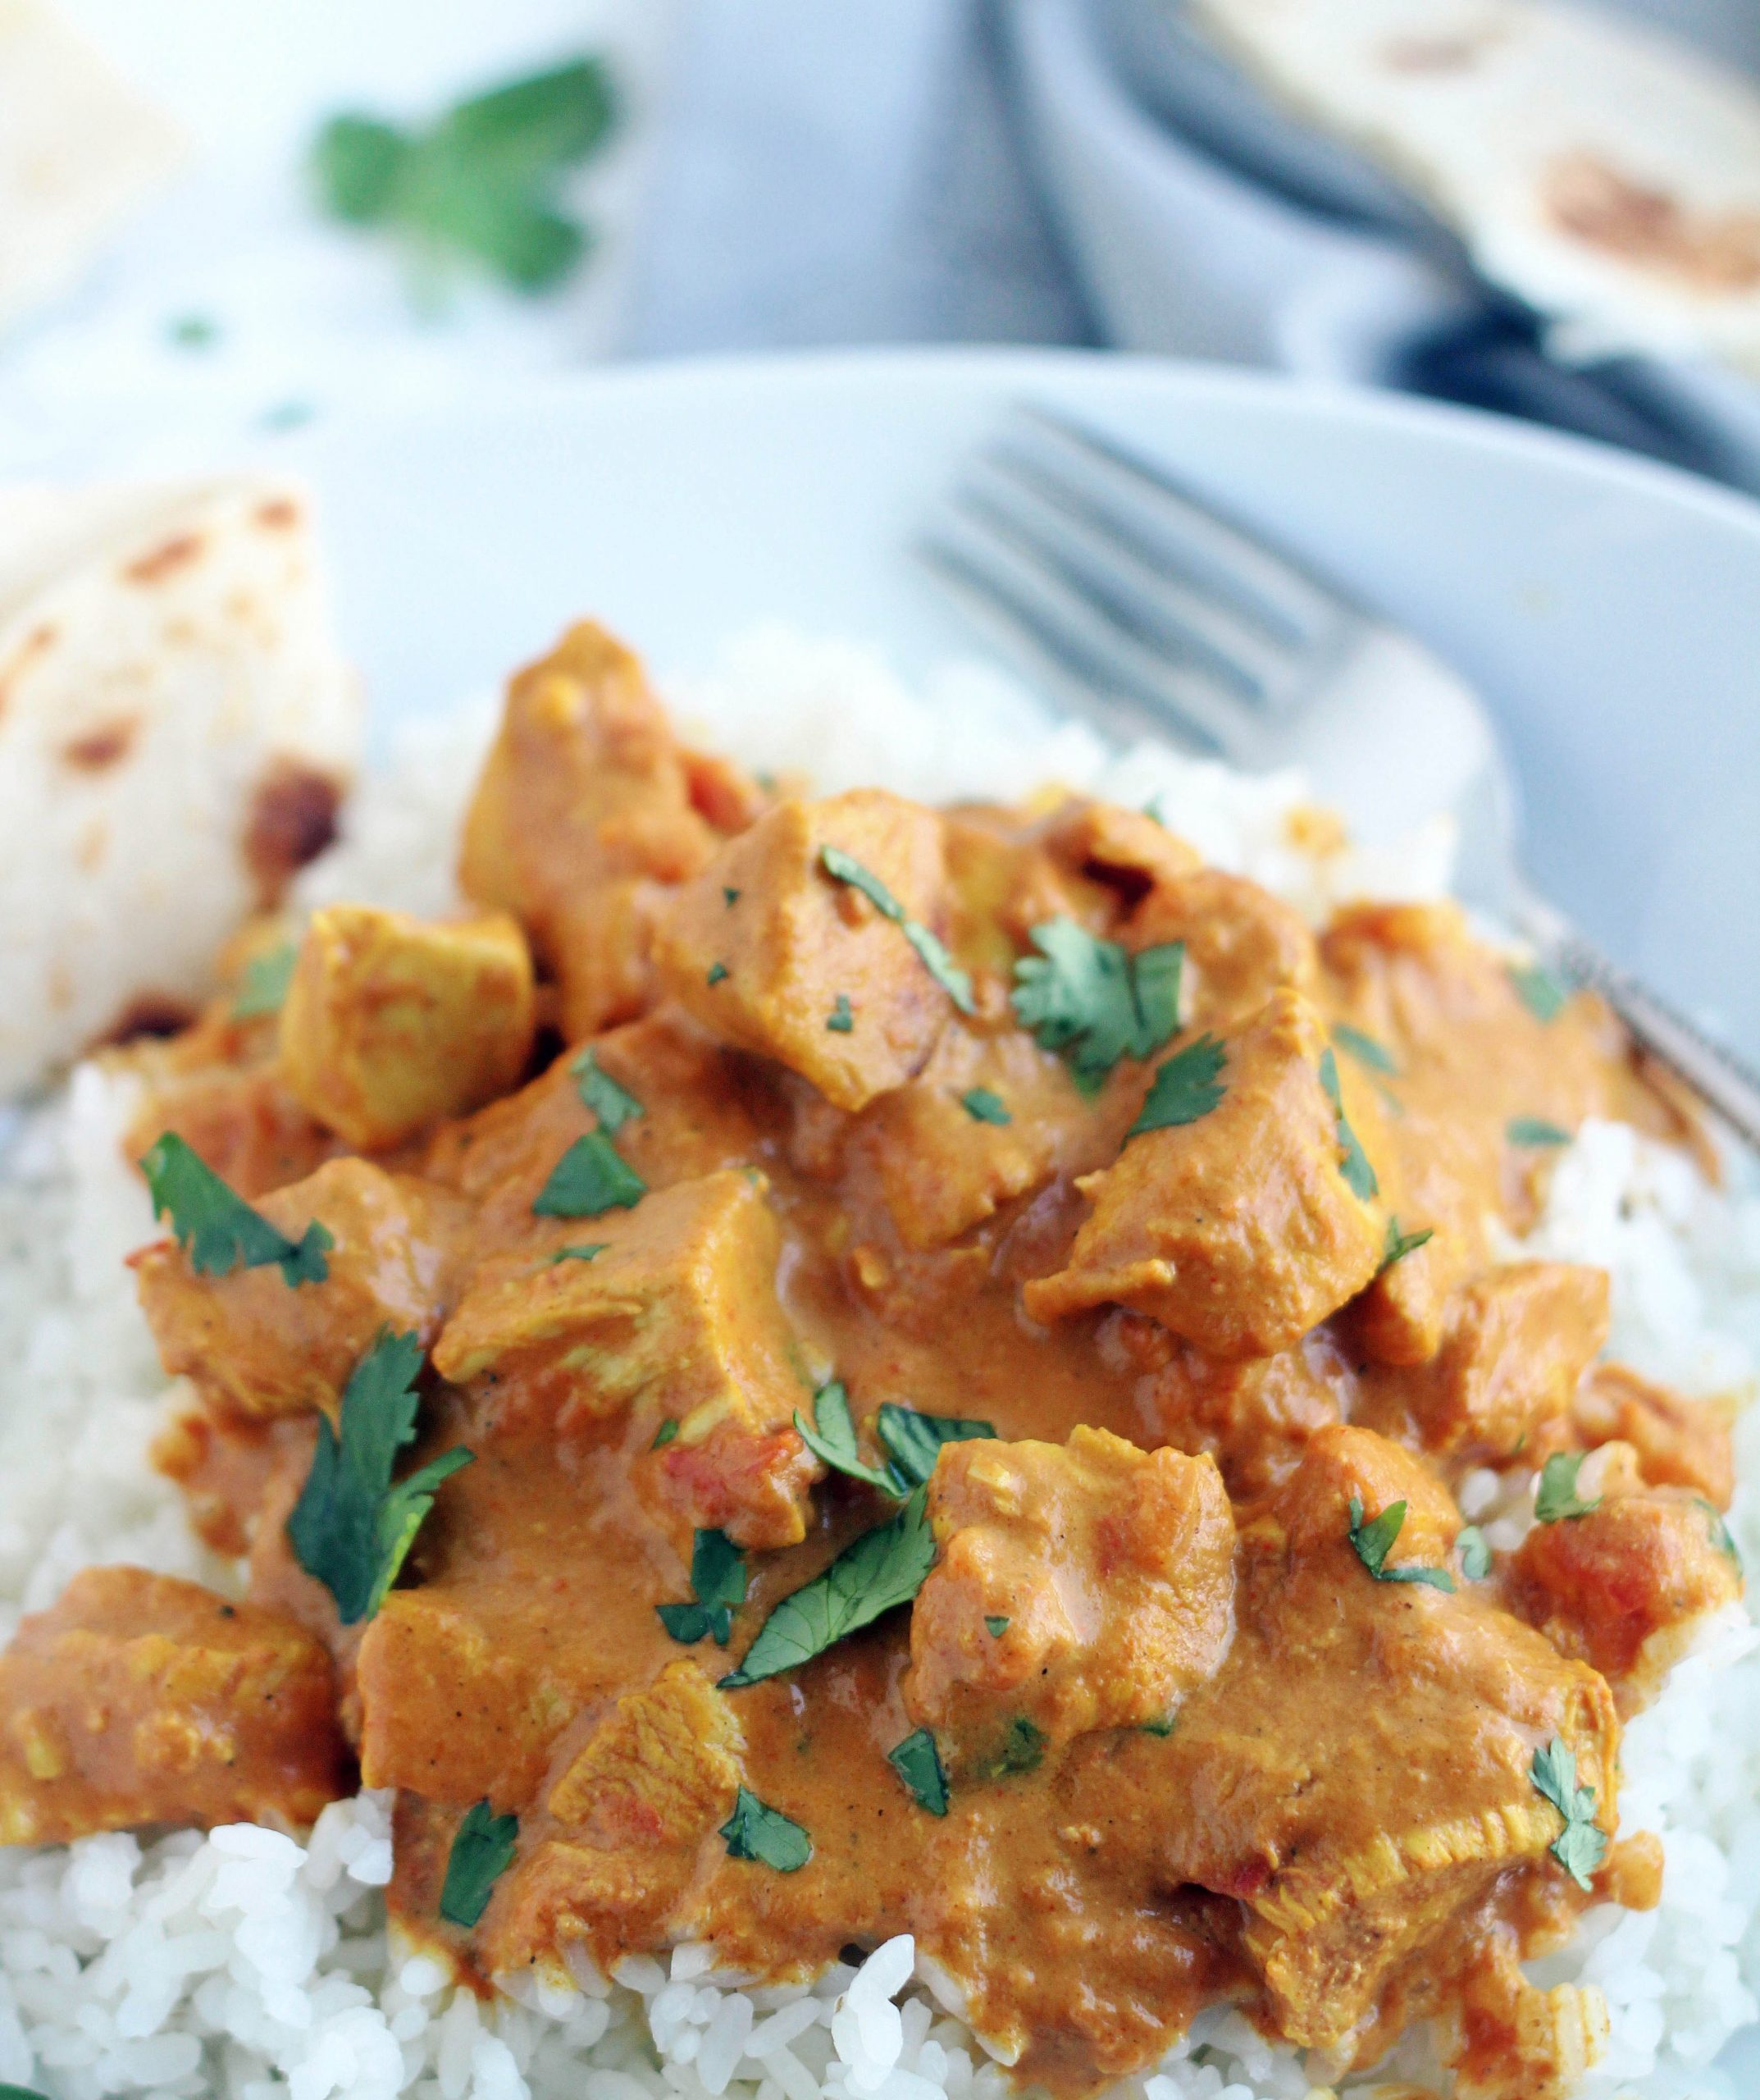 plate of instant pot butter chicken with flat bread on the side